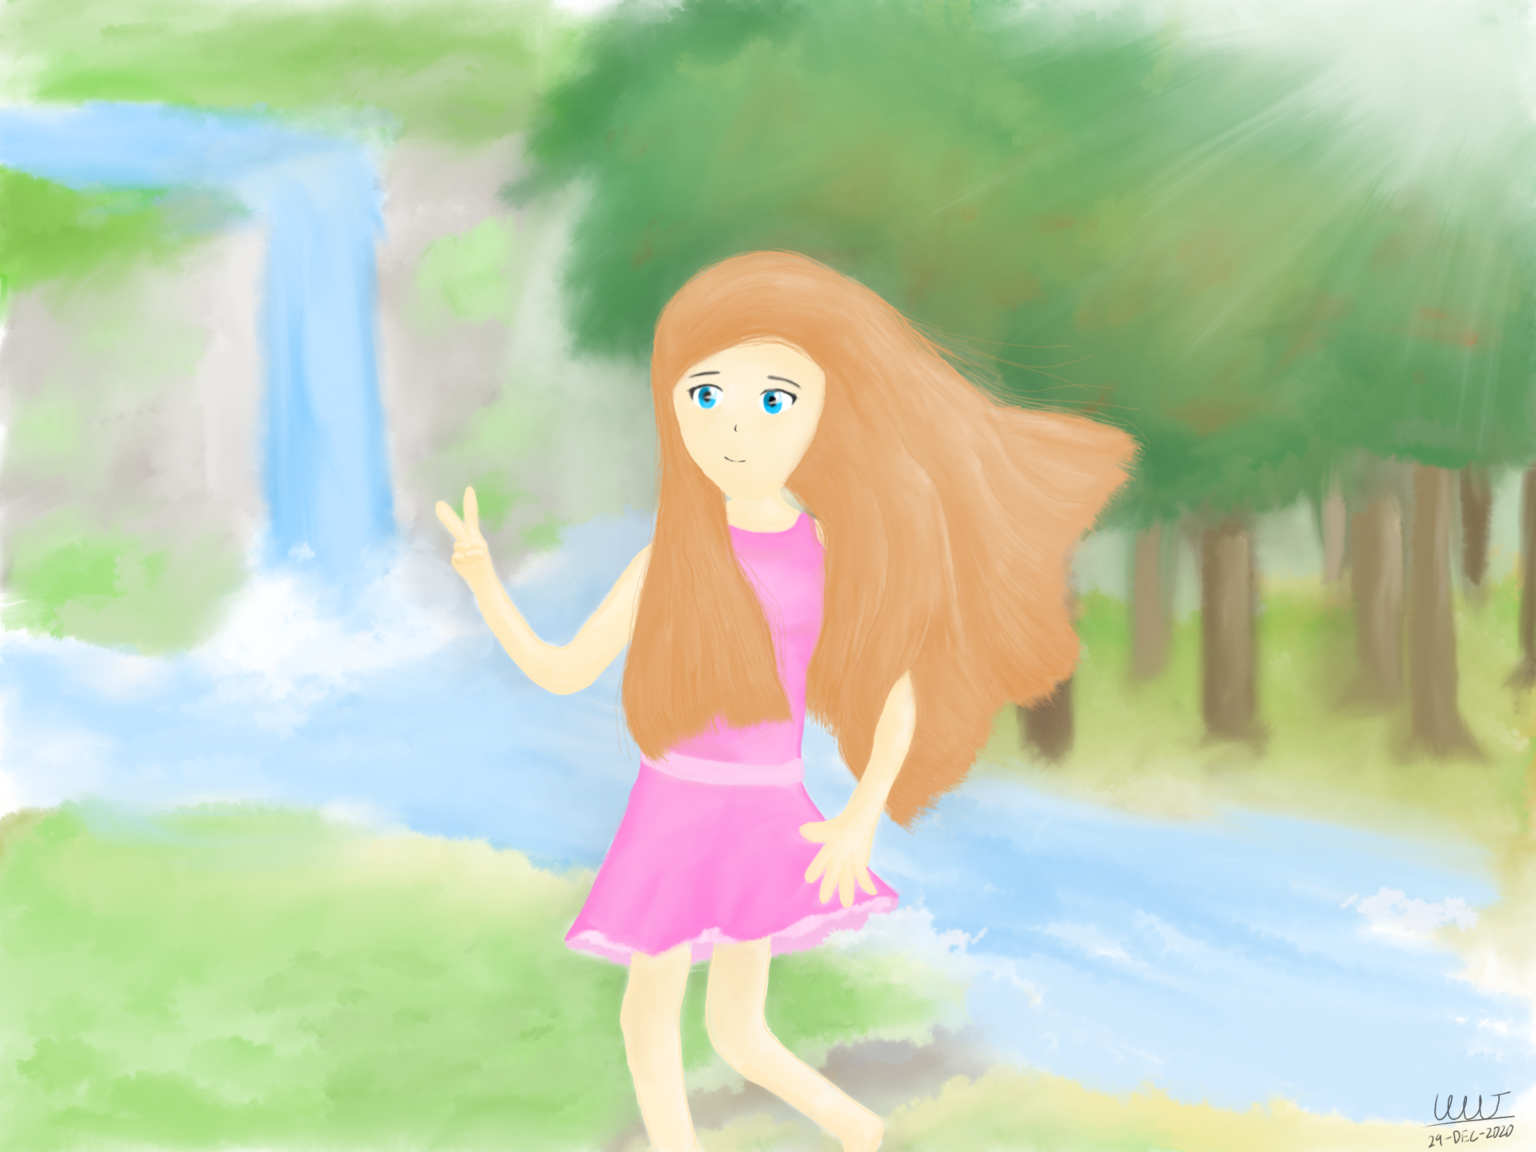 An e-watercolour painting of かざねちゃん (ka-za-ne-chan). She has long and brown hair, wearing a pink short dress. She appears to be posing for a camera shot with a peace hand sign, holding onto her waist-level long hair in front of her. Her dress and some of her hair behind her sway slightly with the wind, while her left leg is slightly lifted above the grass patch she's standing on, as if a step is being taken. The background consists of a waterfall far back to the left, and forest-like scenery on the back right. A river, in which the waterfall flows into, also flows behind her, from left to right, in front of the forest.